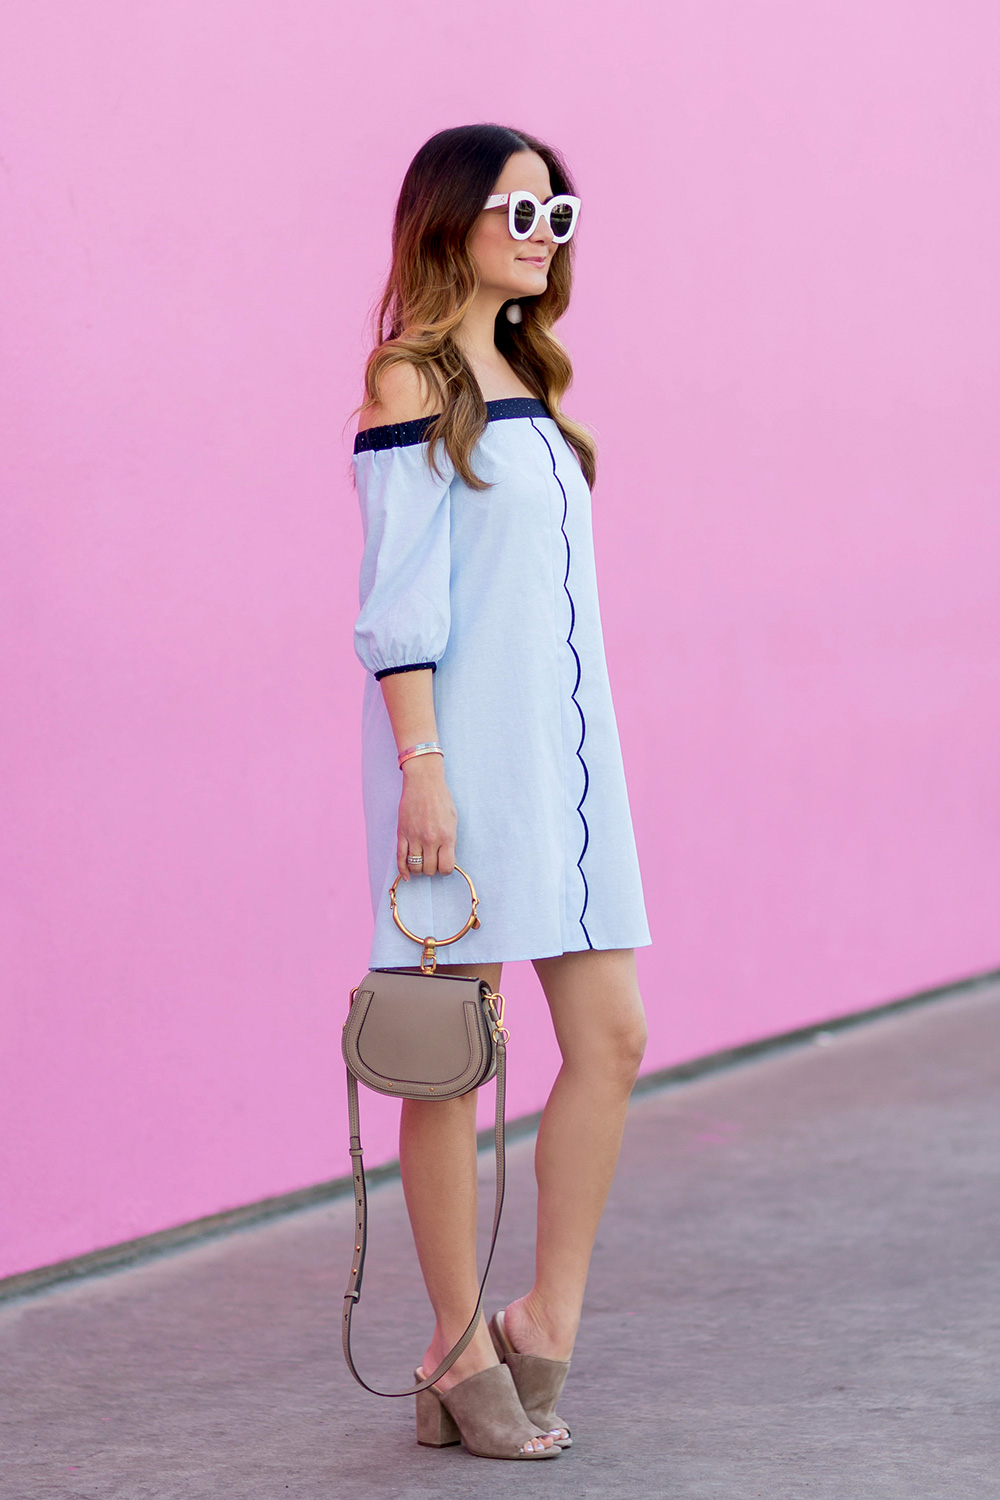 Los Angeles Pink Wall Street Style